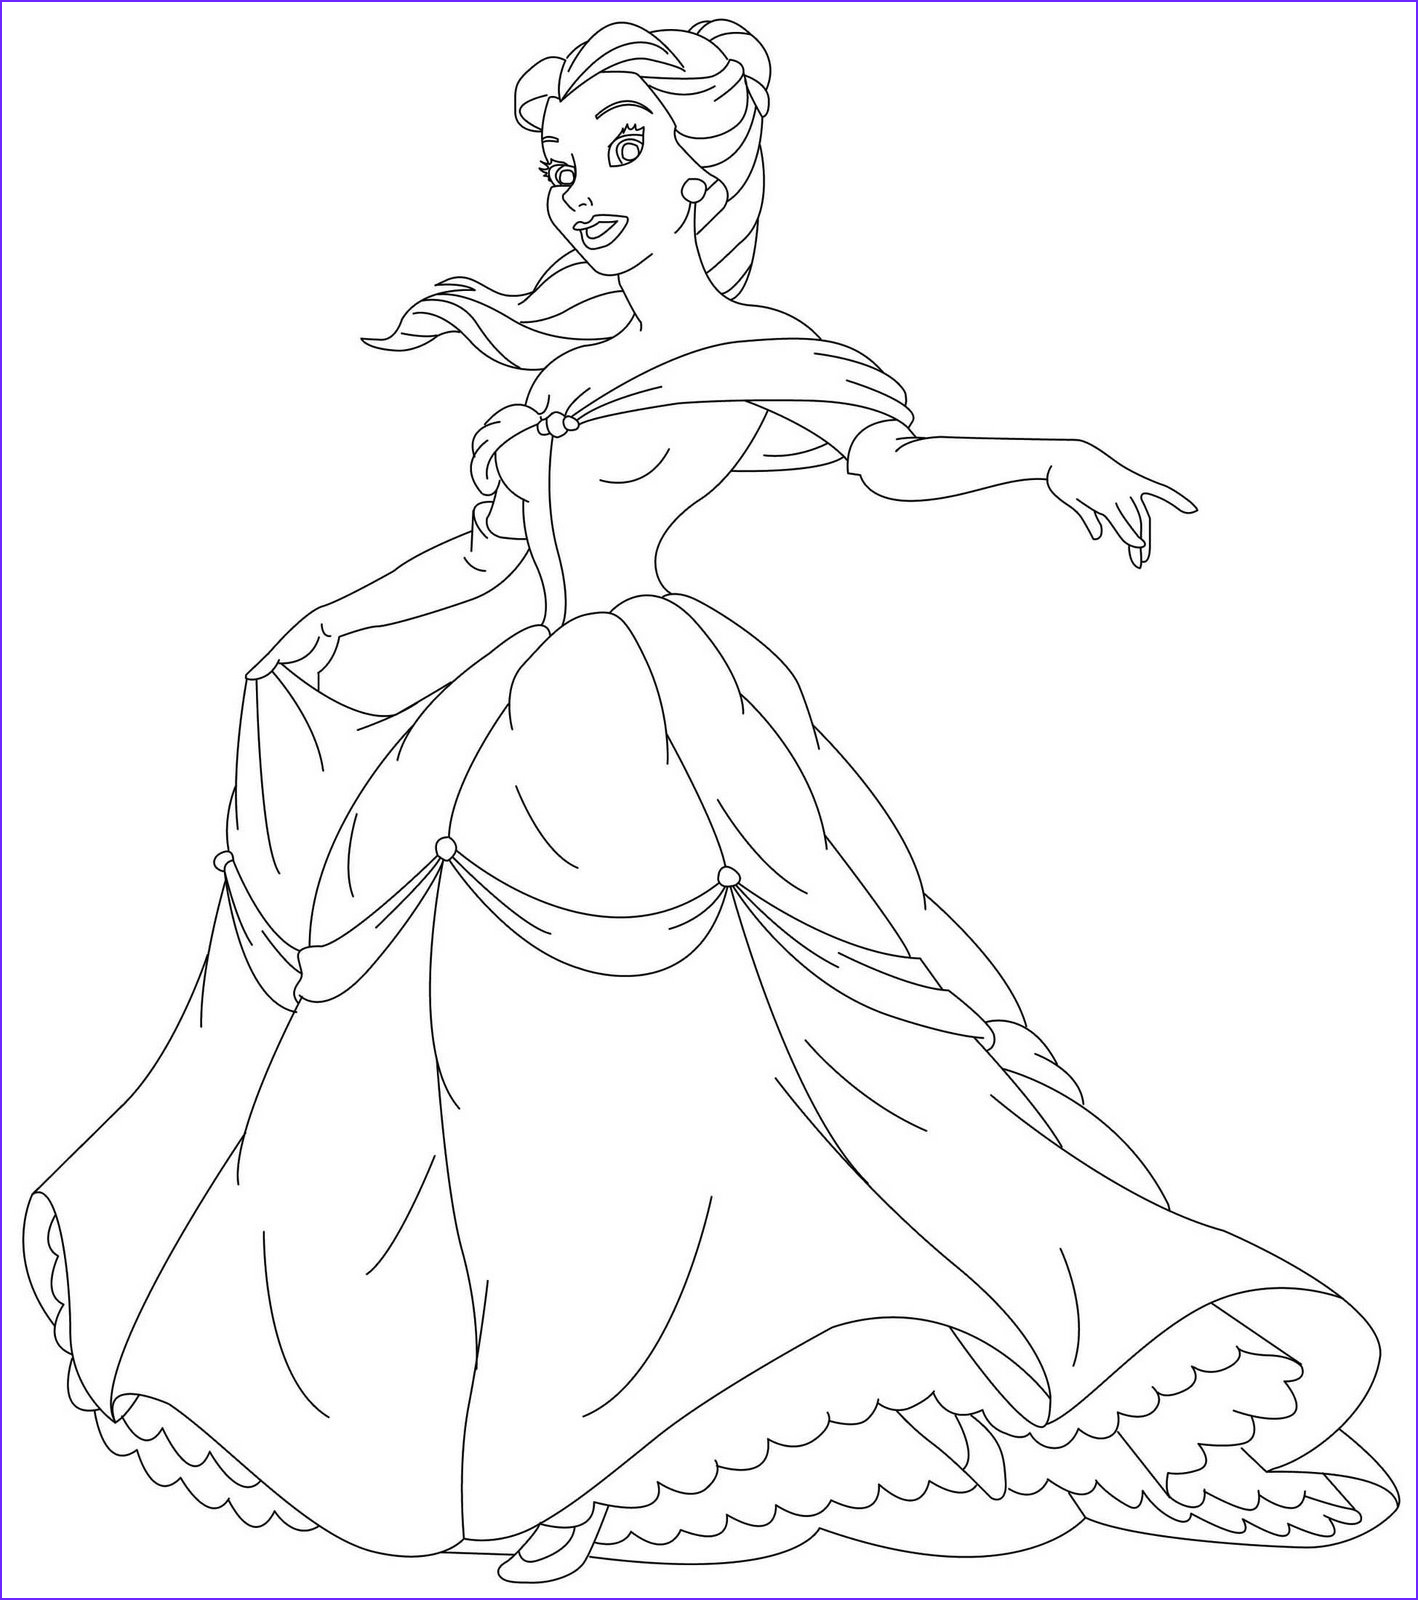 Princess Coloring Pages to Print Beautiful Image Free Printable Disney Princess Coloring Pages for Kids